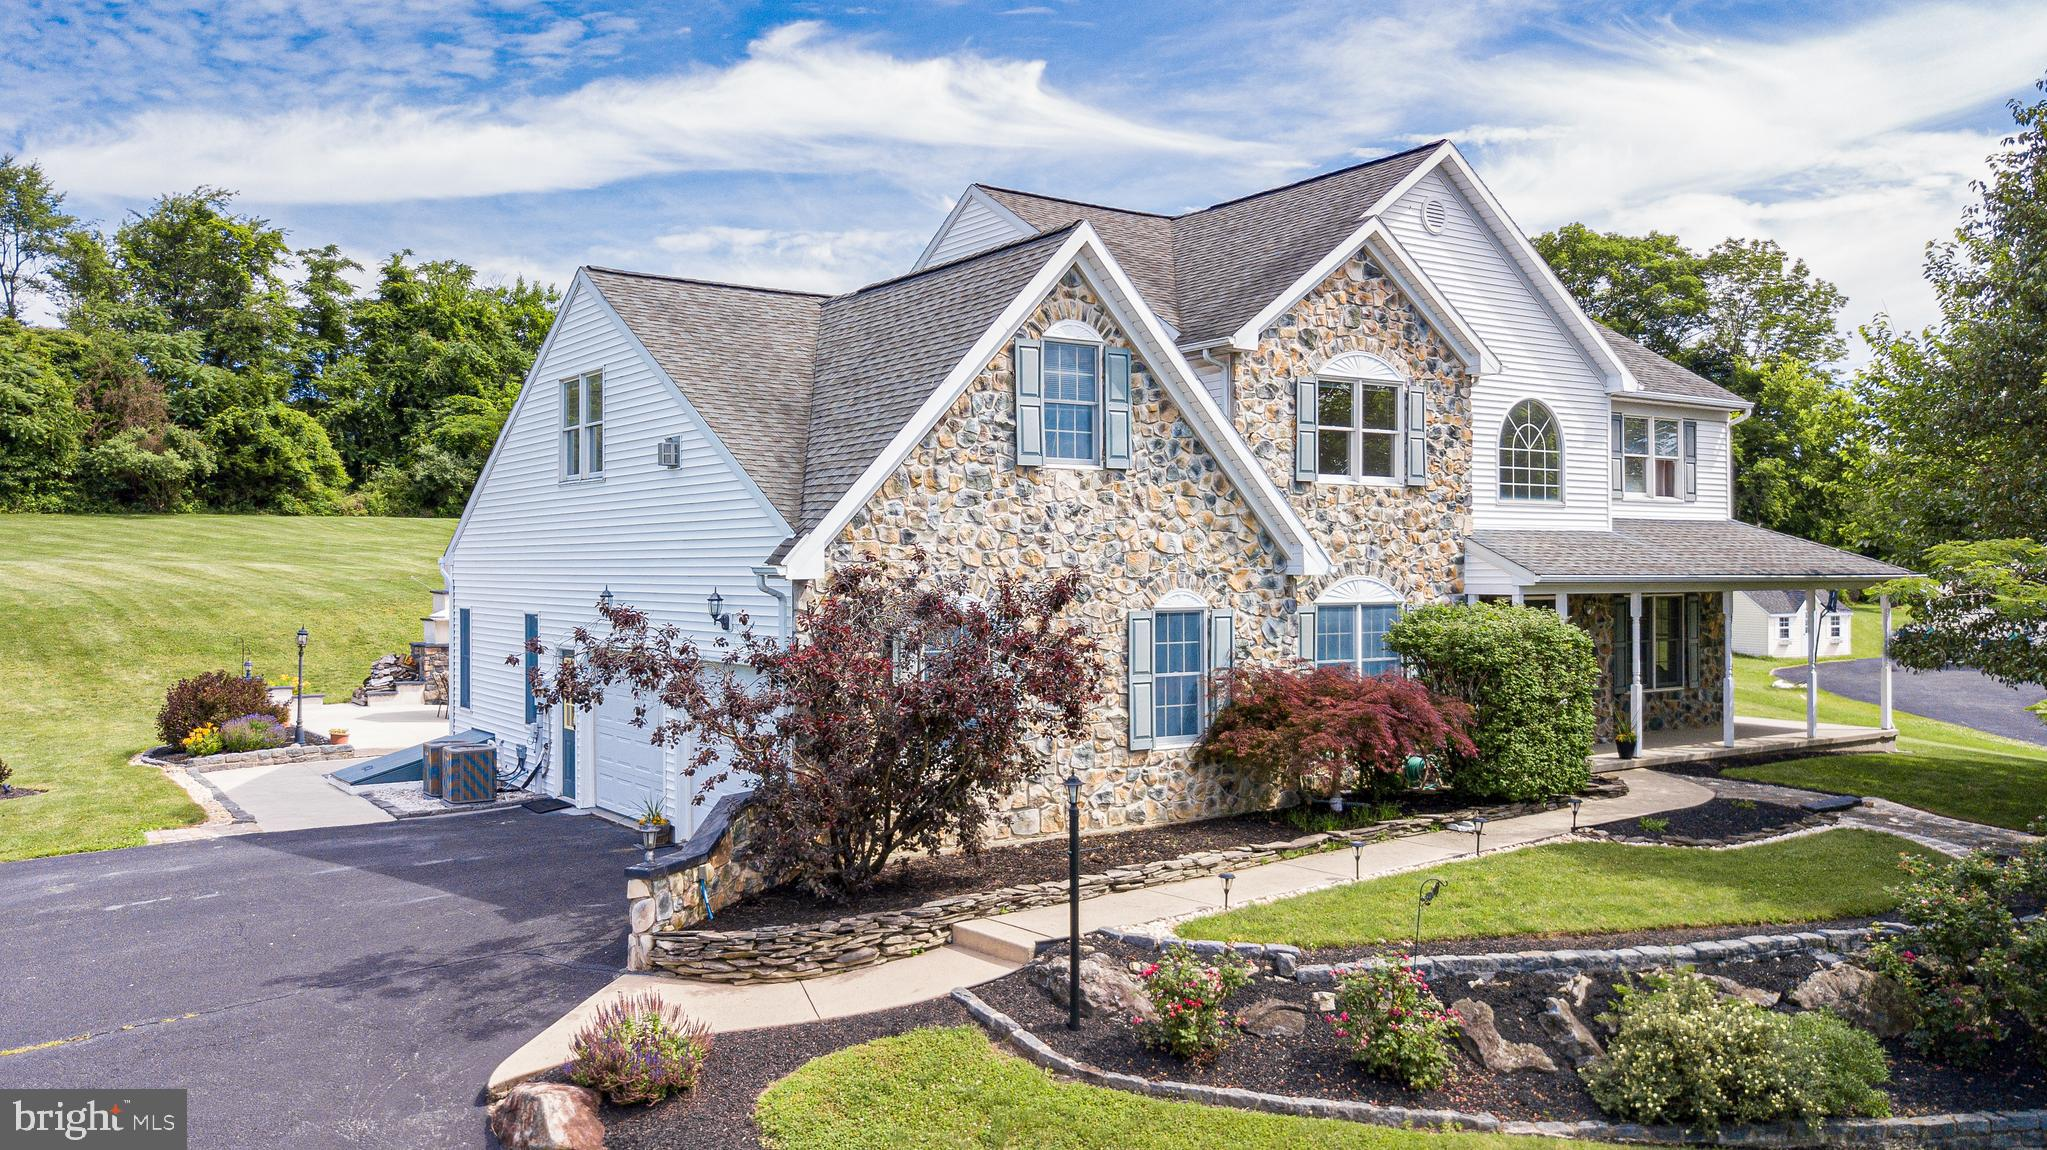 45 RIVERVIEW DRIVE, EASTON, PA 18042